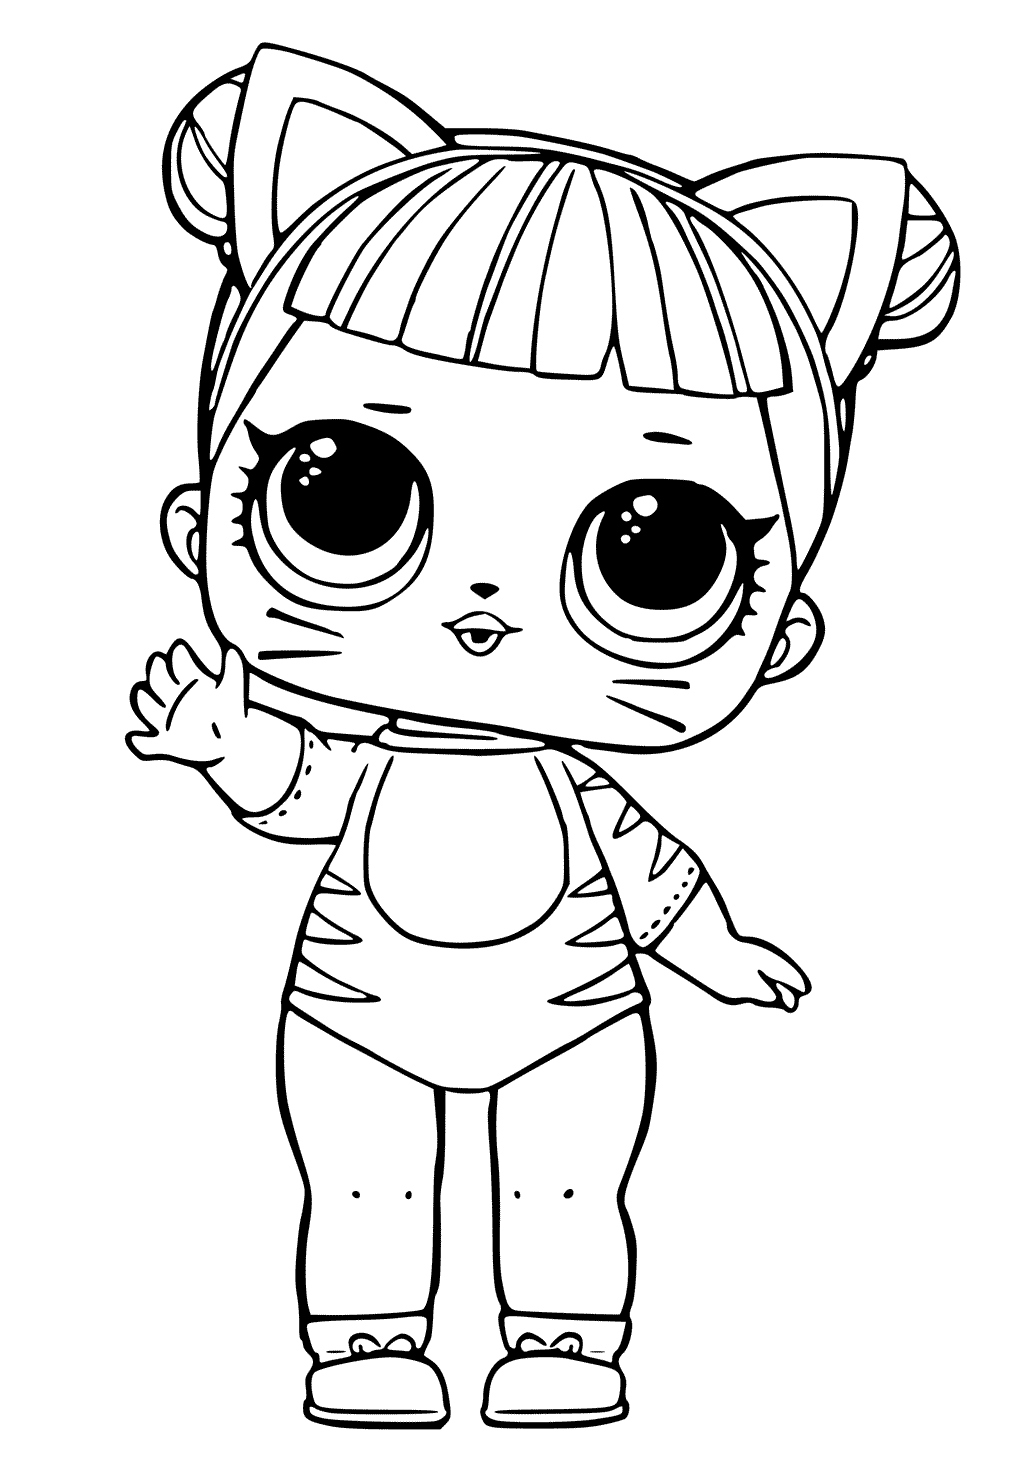 Flower Child Series 3 Lol Surprise Doll Coloring Page Dibujos